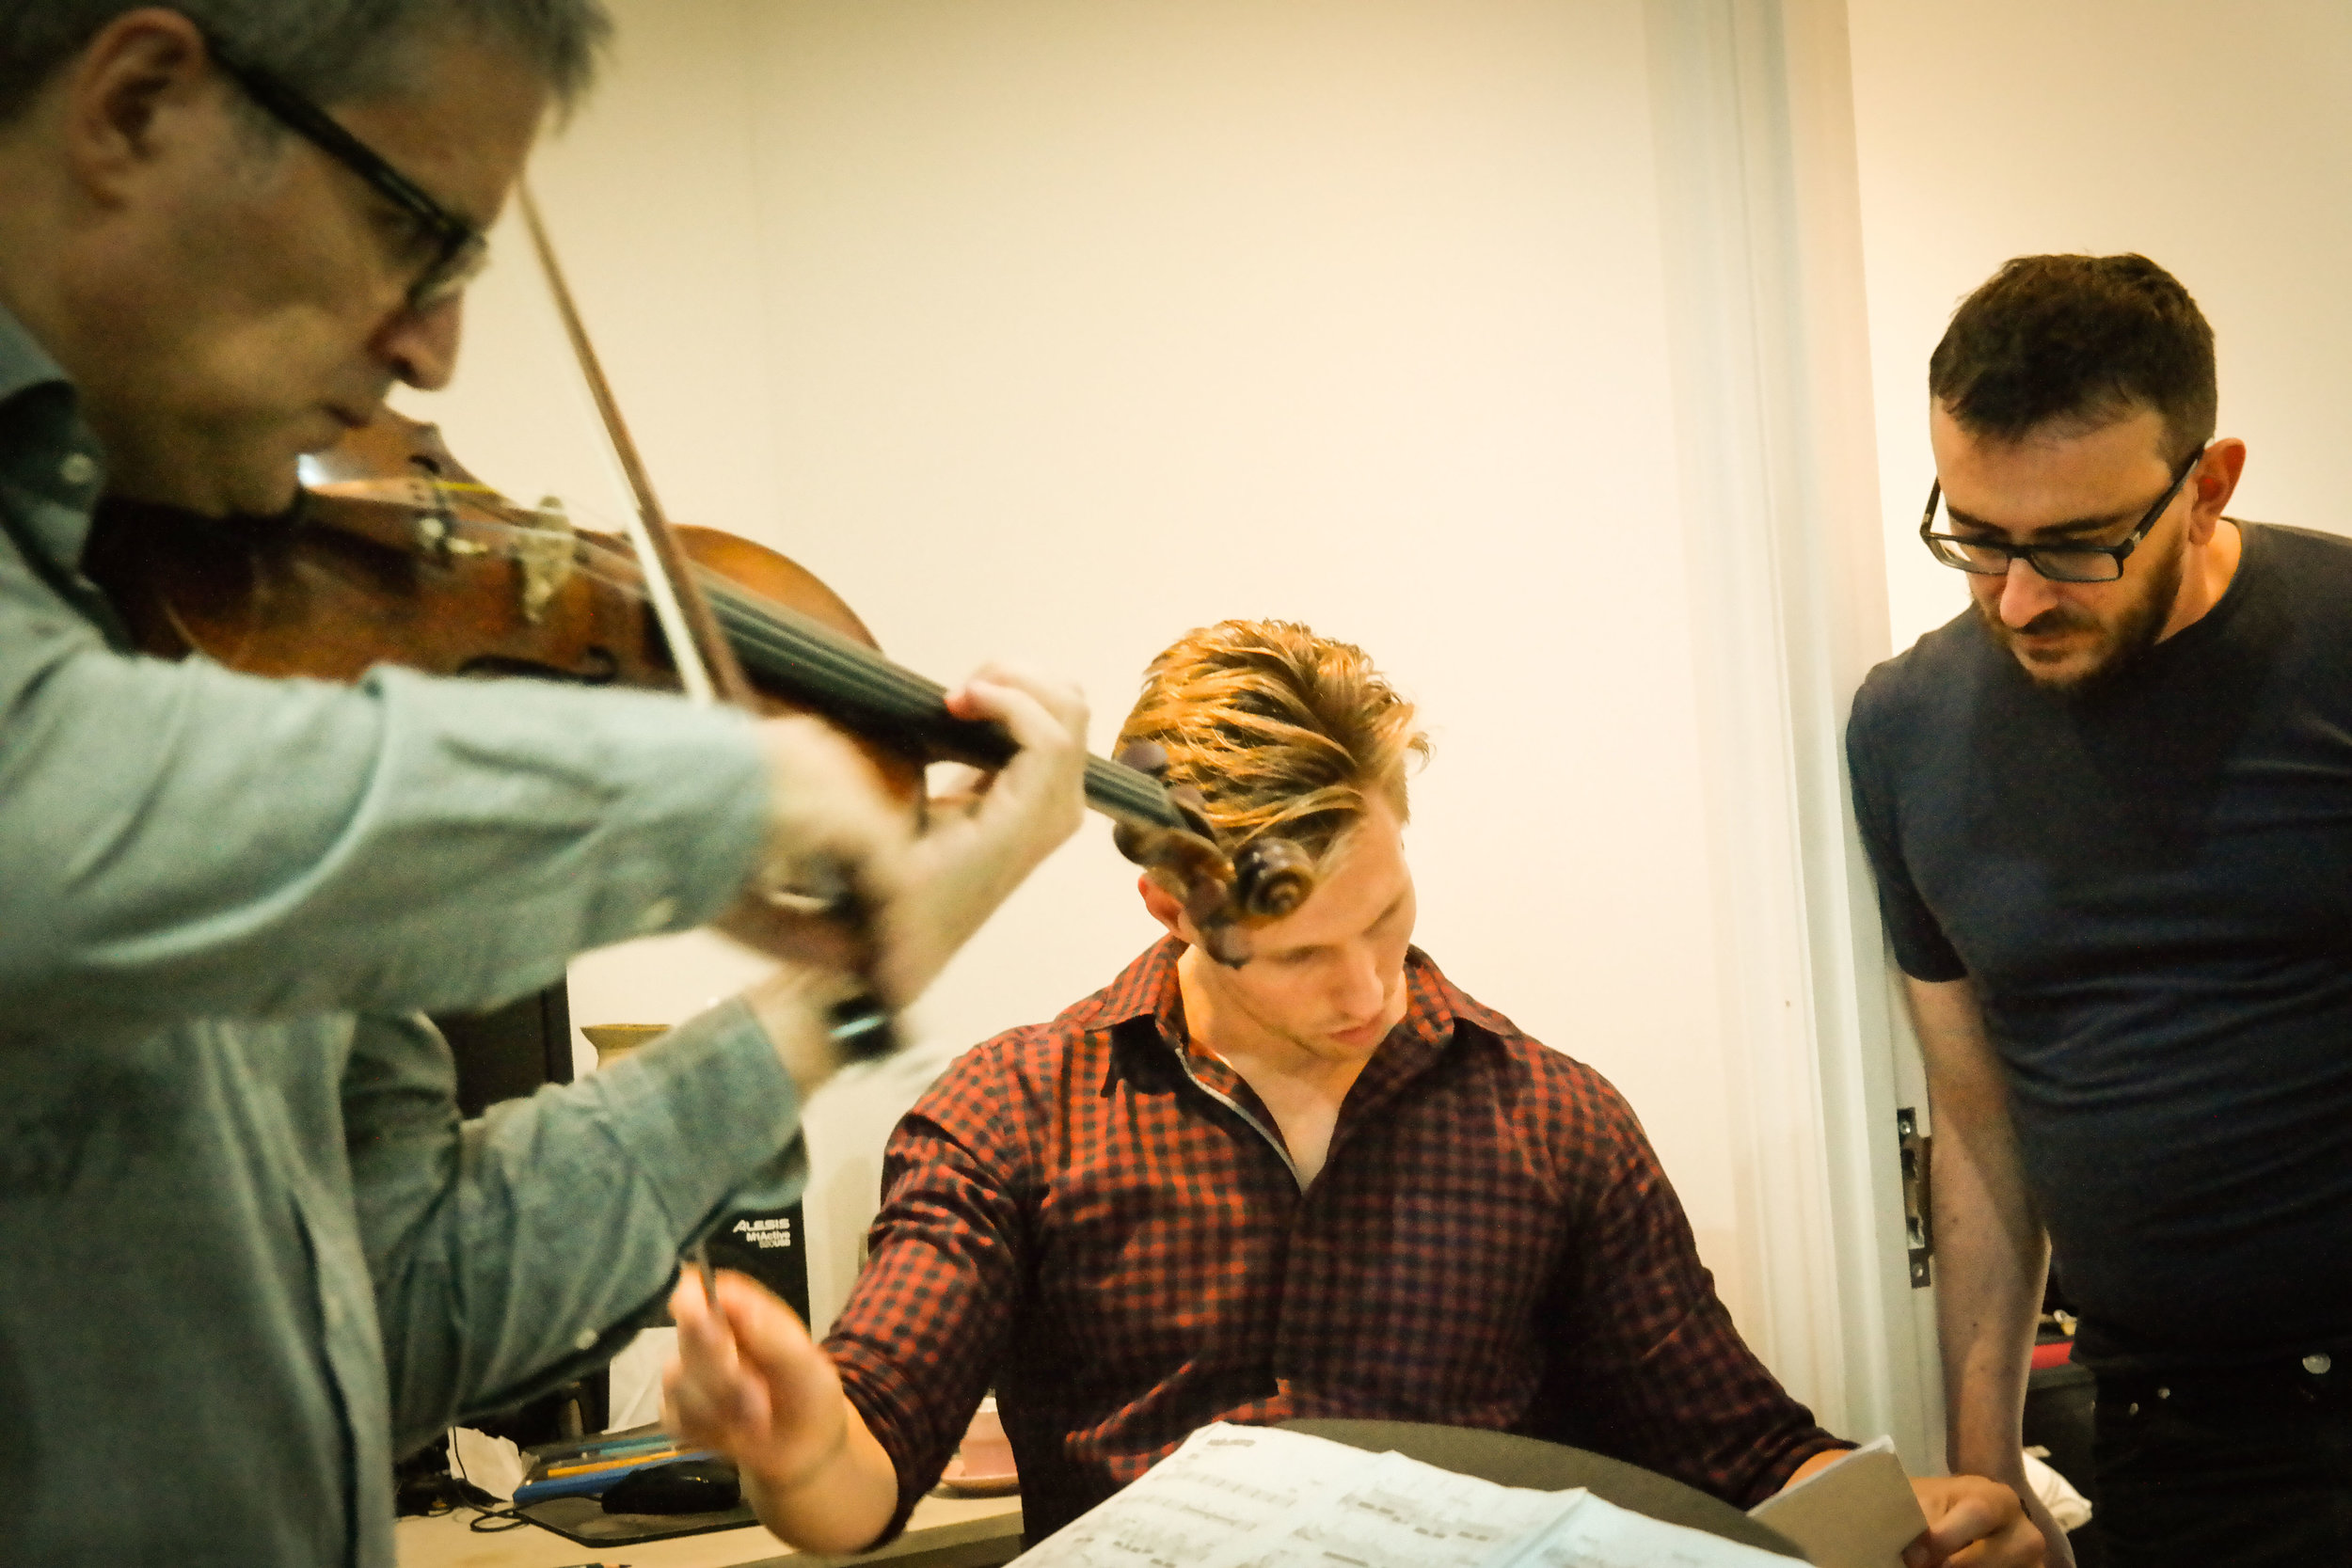 Francesco D'Orazio (violin), Lee Reynolds (conductor) and Vito Palumbo (composer) rehearsing for the session.